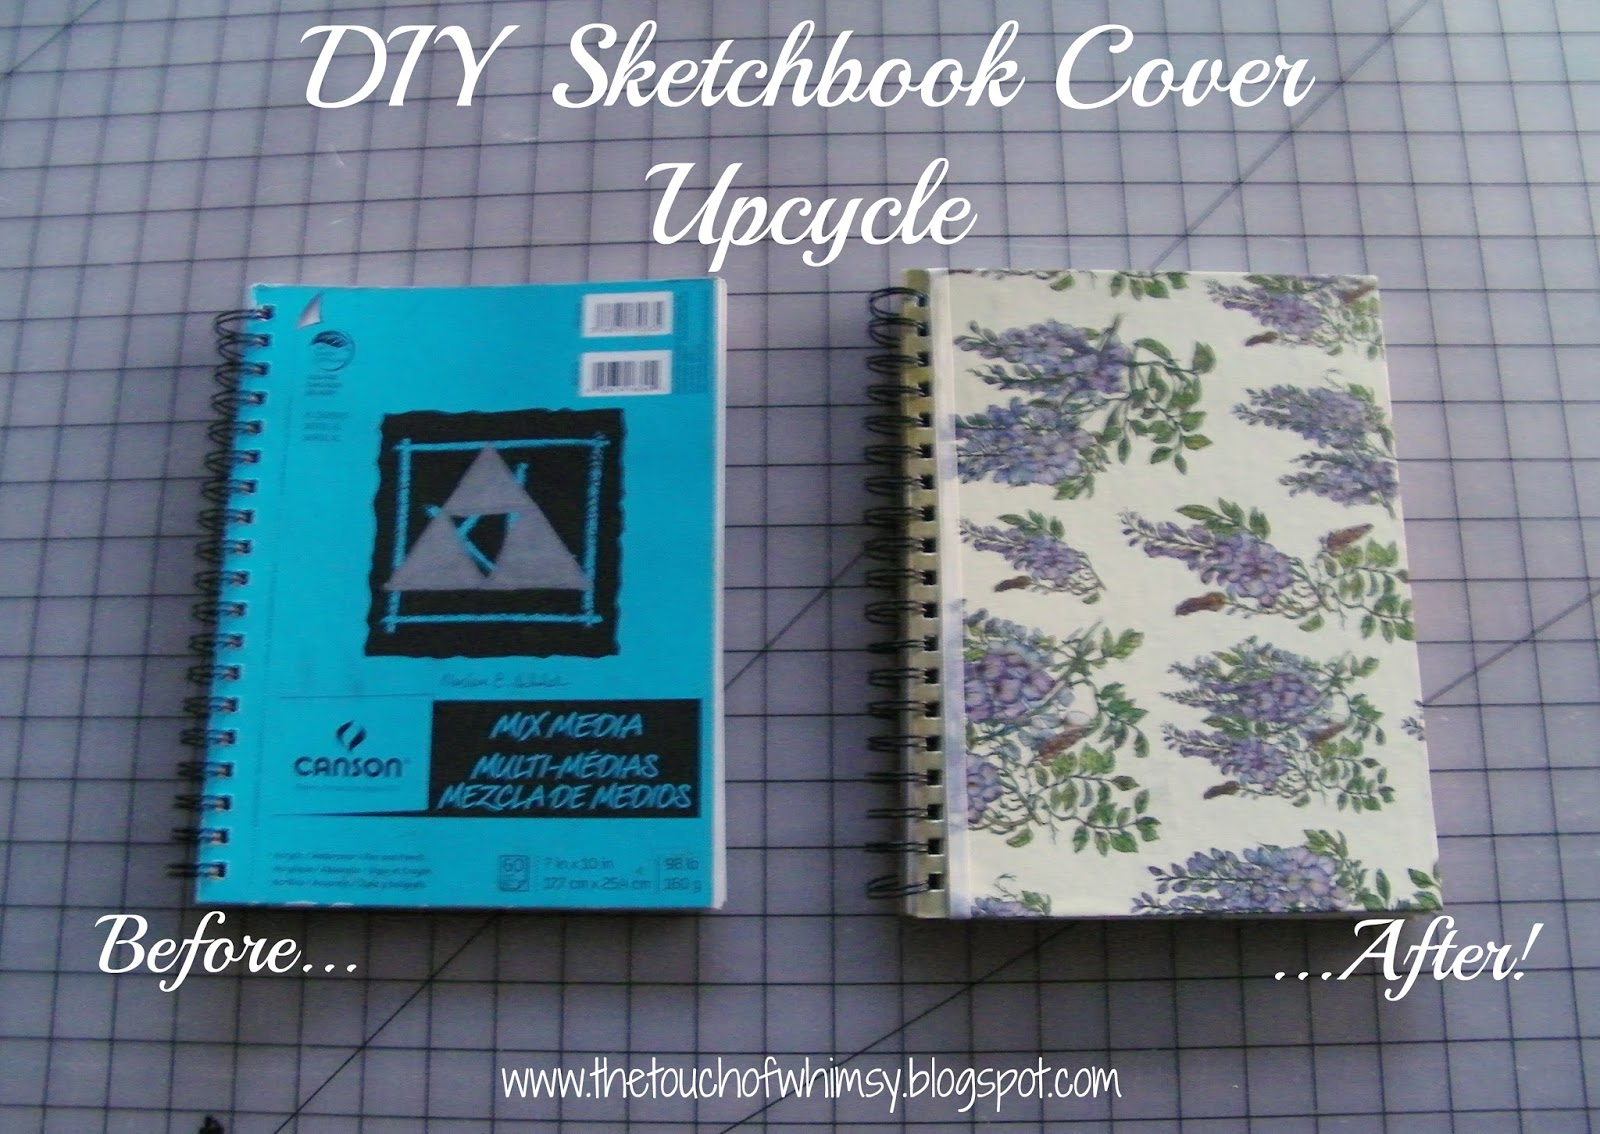 Diy Sketchbook Cover : The touch of whimsy diy sketchbook cover upcycle